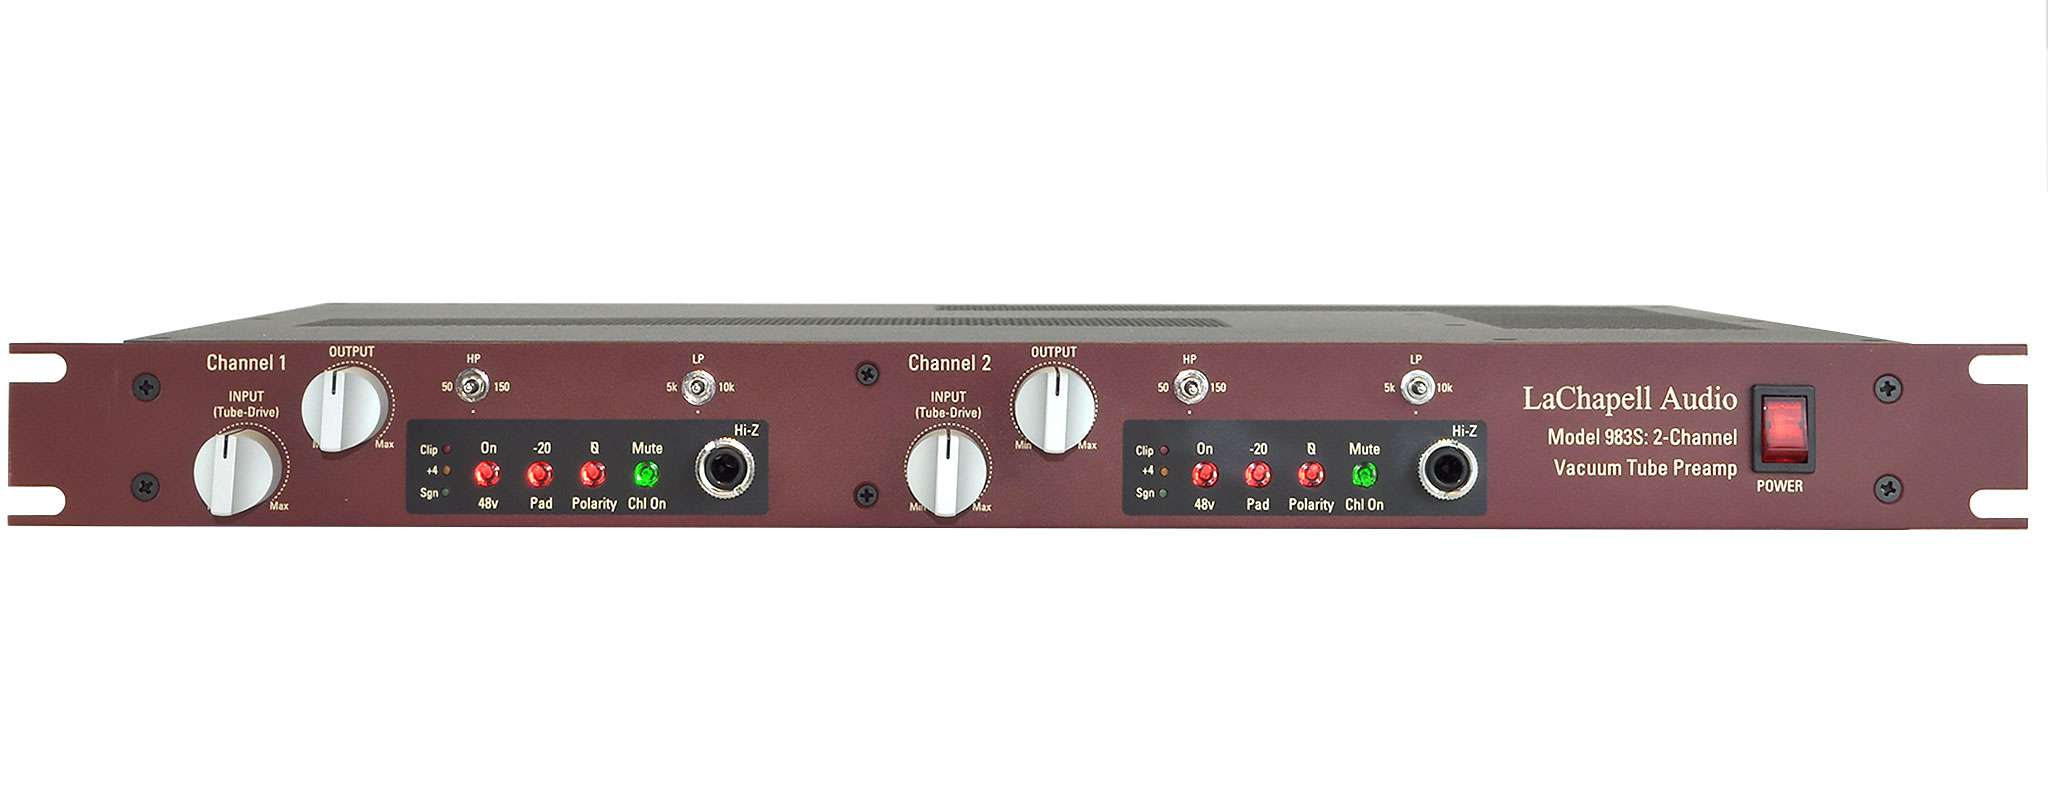 LaChapell Audio 983S two channel tube mic pre rack unit front image